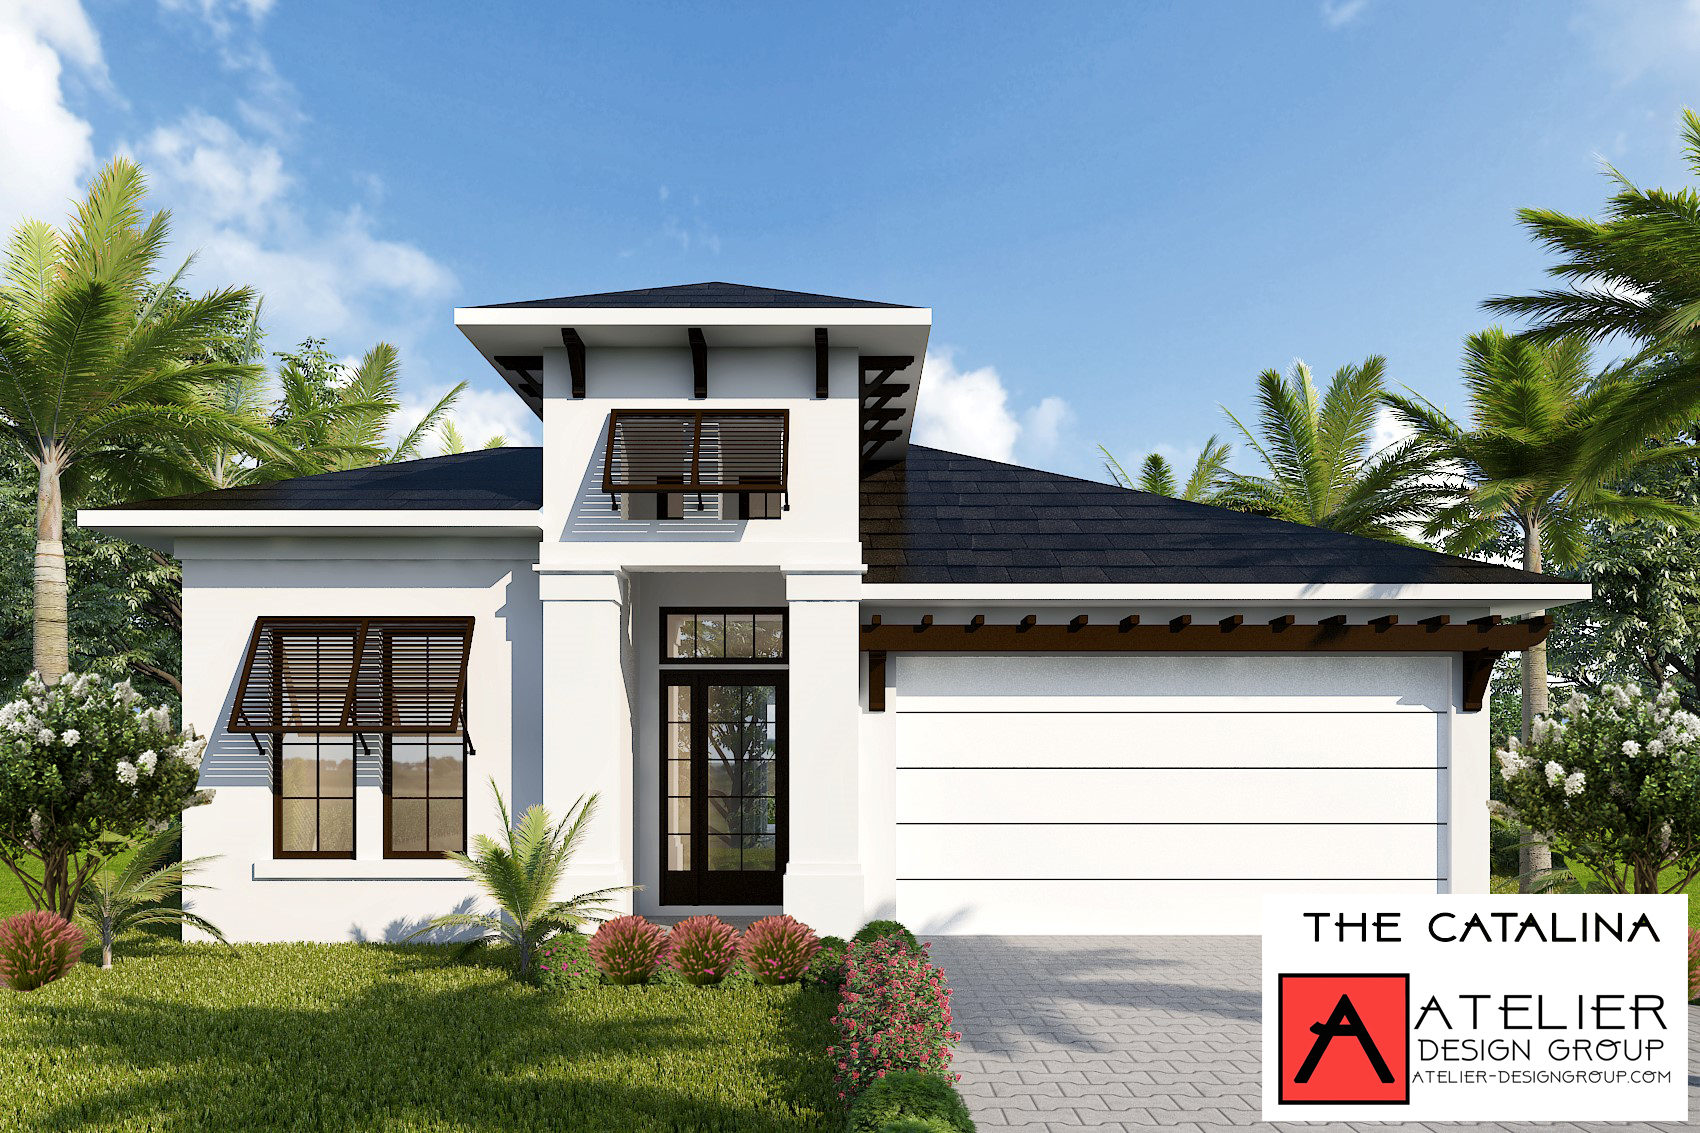 Atelier Design Group is the designer of The Catalina model home for Showcase Community, Marina Del Palma, during this year's Parade of Homes! We have also designed four other models for this wonderful new community. The parade runs from March 23rd - March 31st.  #paradeofhomes ,  #flaglerhba   #HBA  #marinadelpalma   #PalmCoast   #flaglerbeach  #customehome   #atelierdesigngroup  — at  Atelier Design Group .